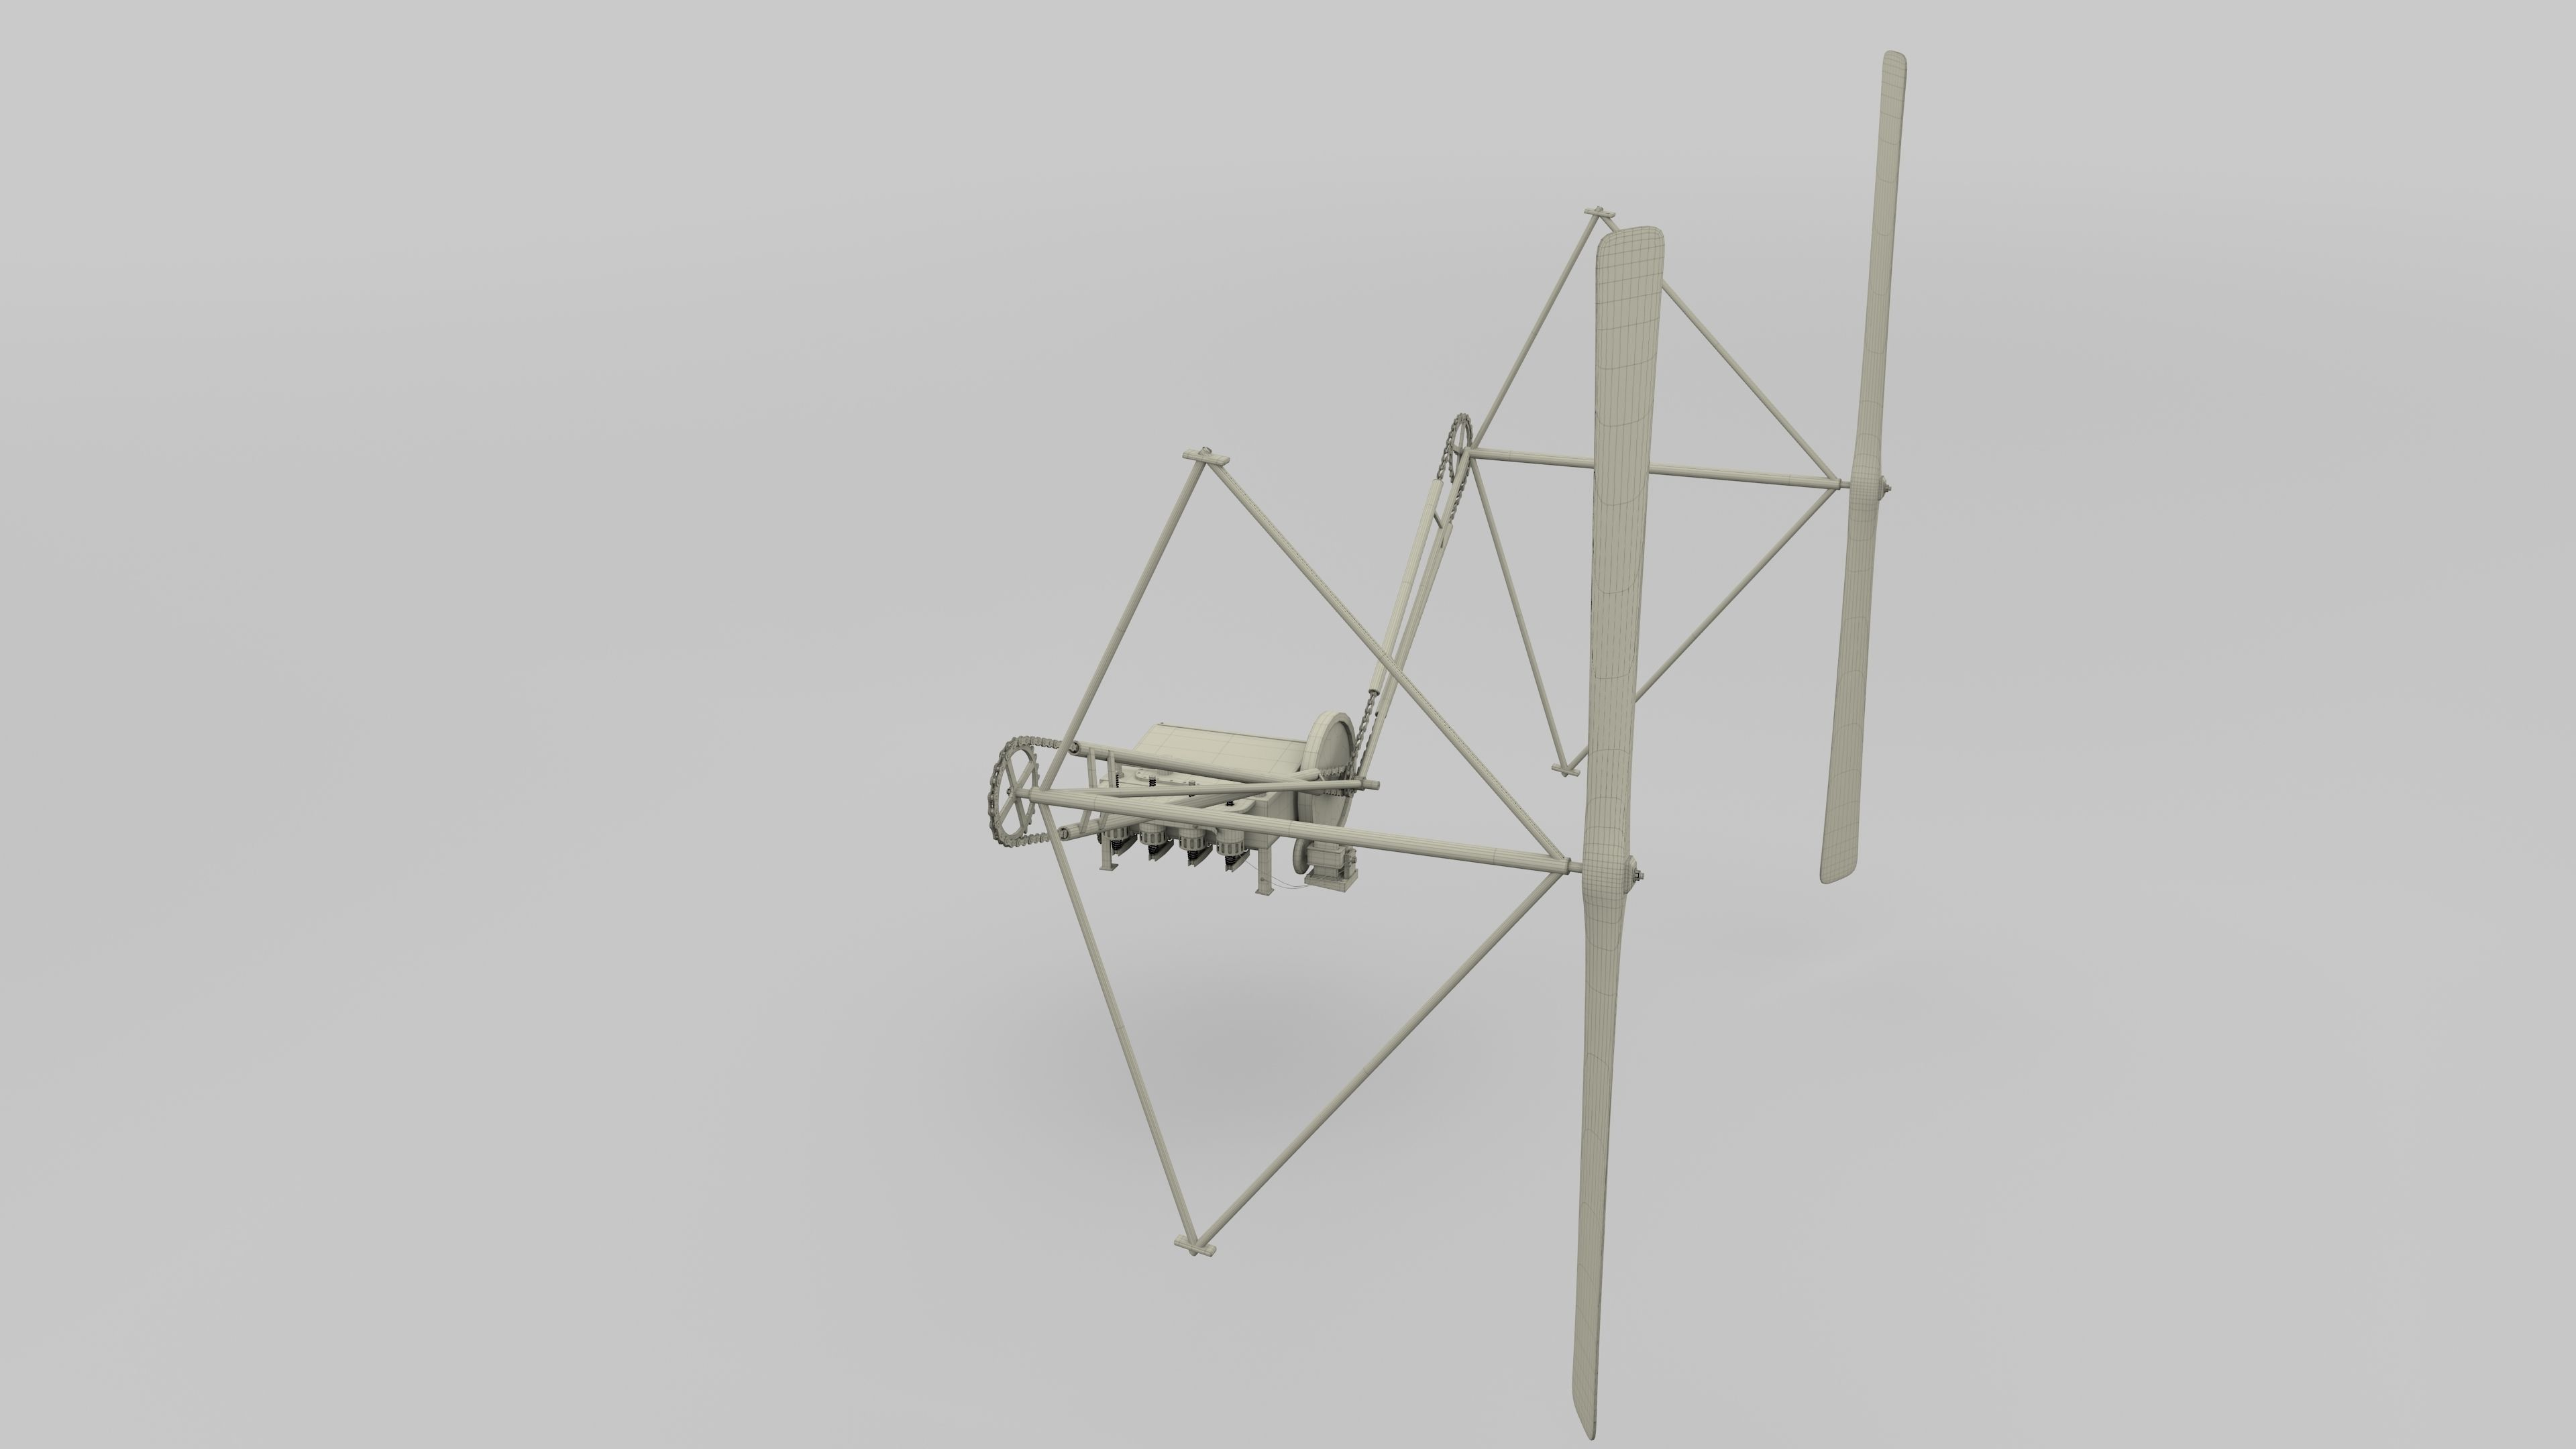 Wright Flyer Propulsion Animated 3d Model Animated Rigged